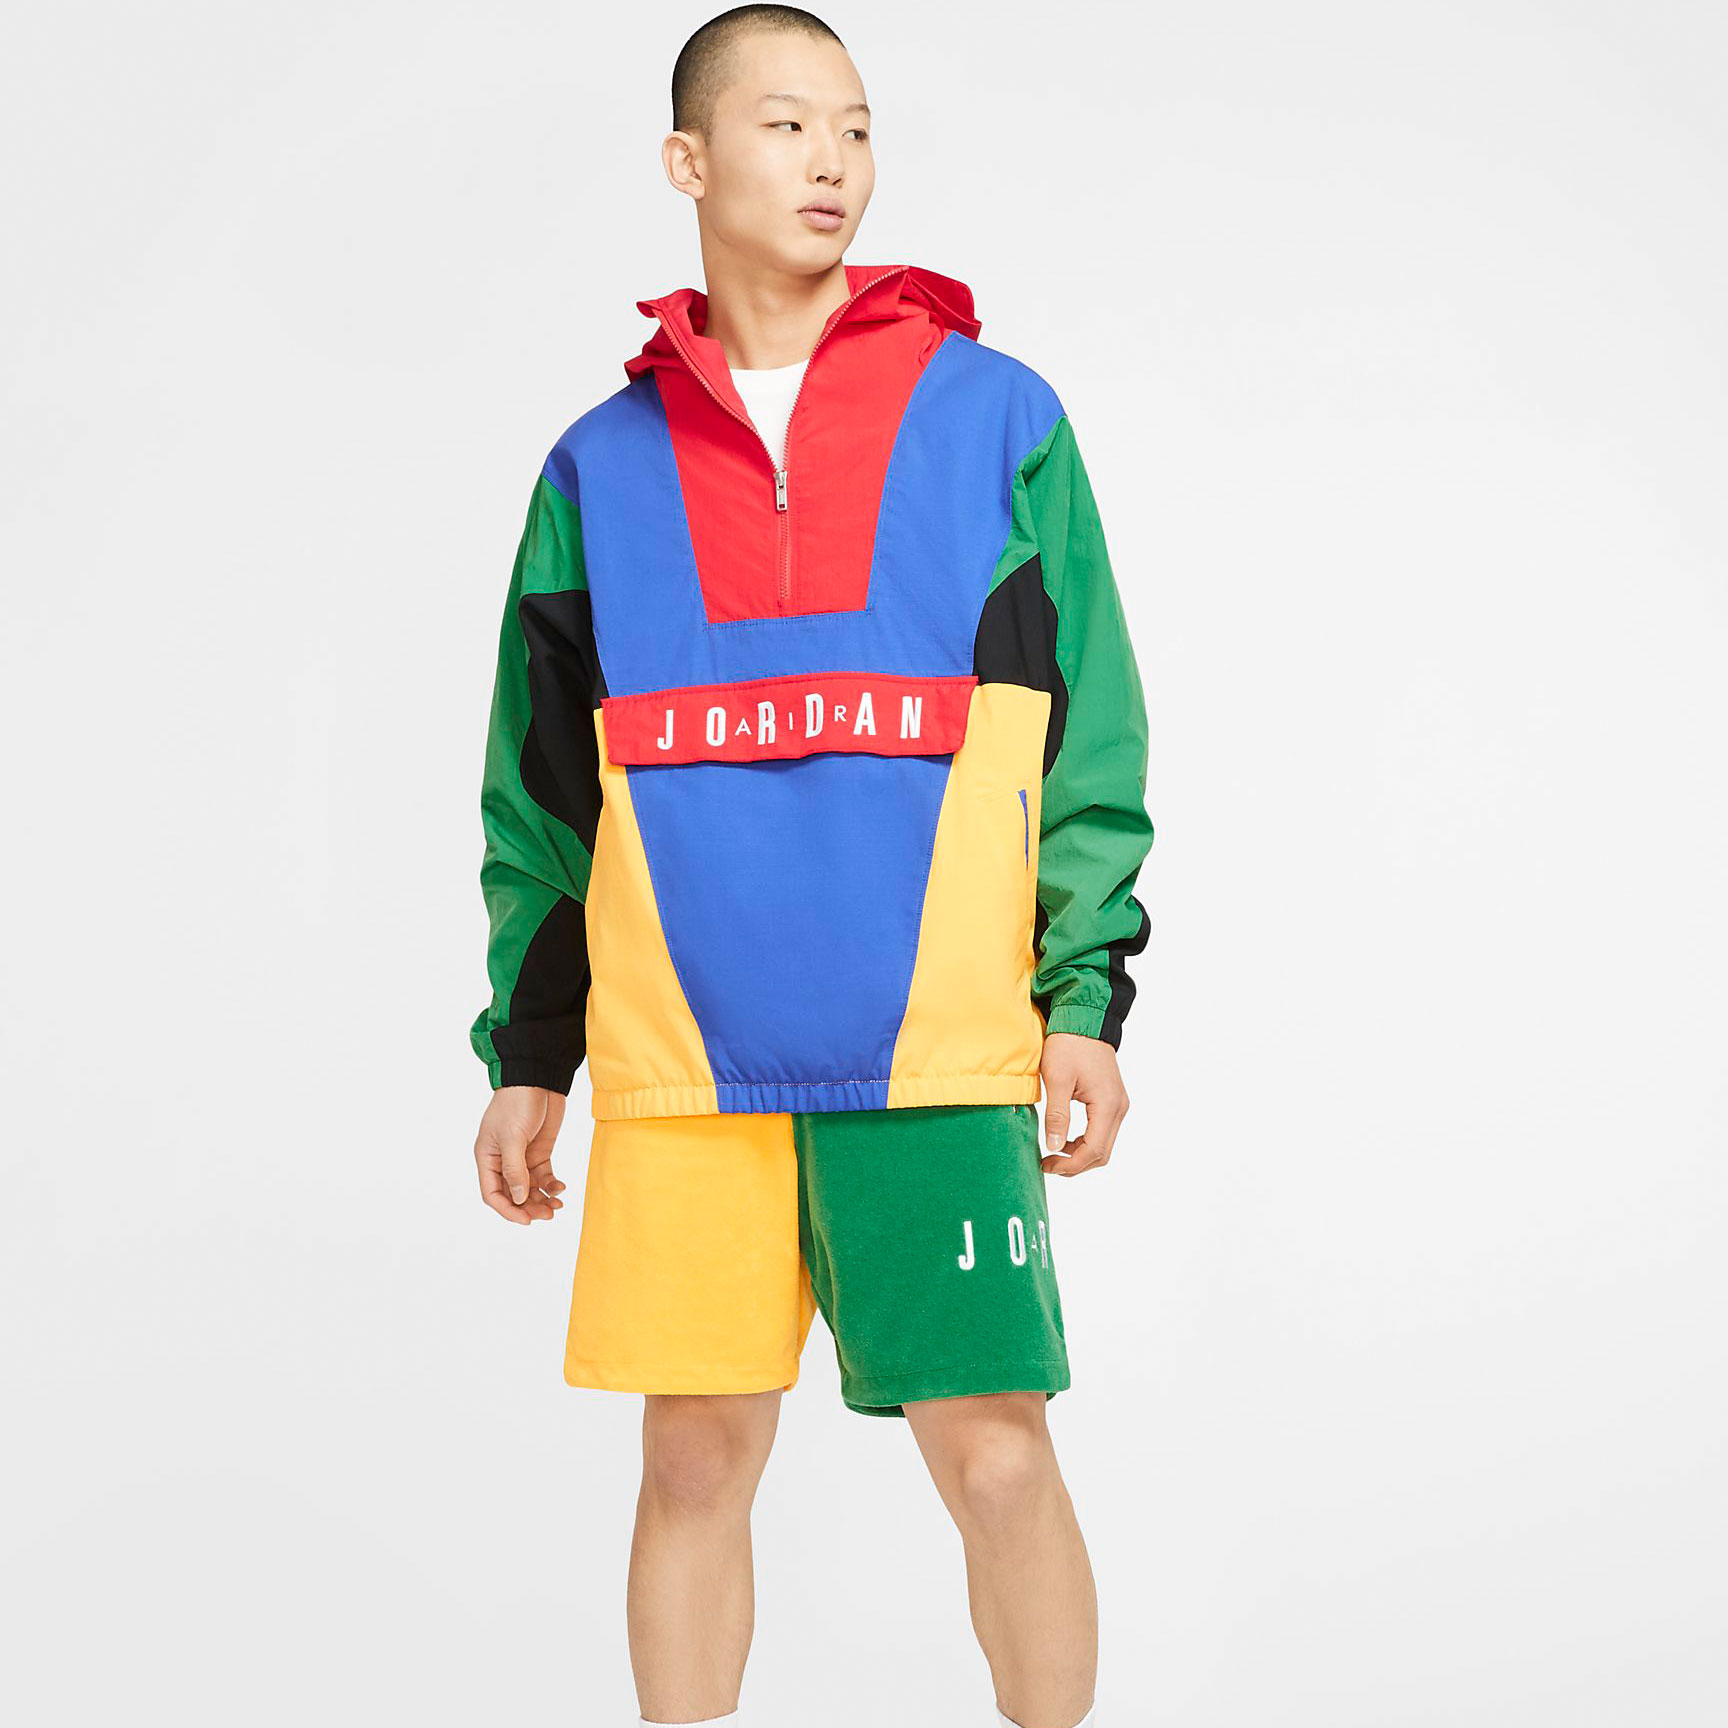 hare-jordan-6-jacket-shorts-sneaker-outfit